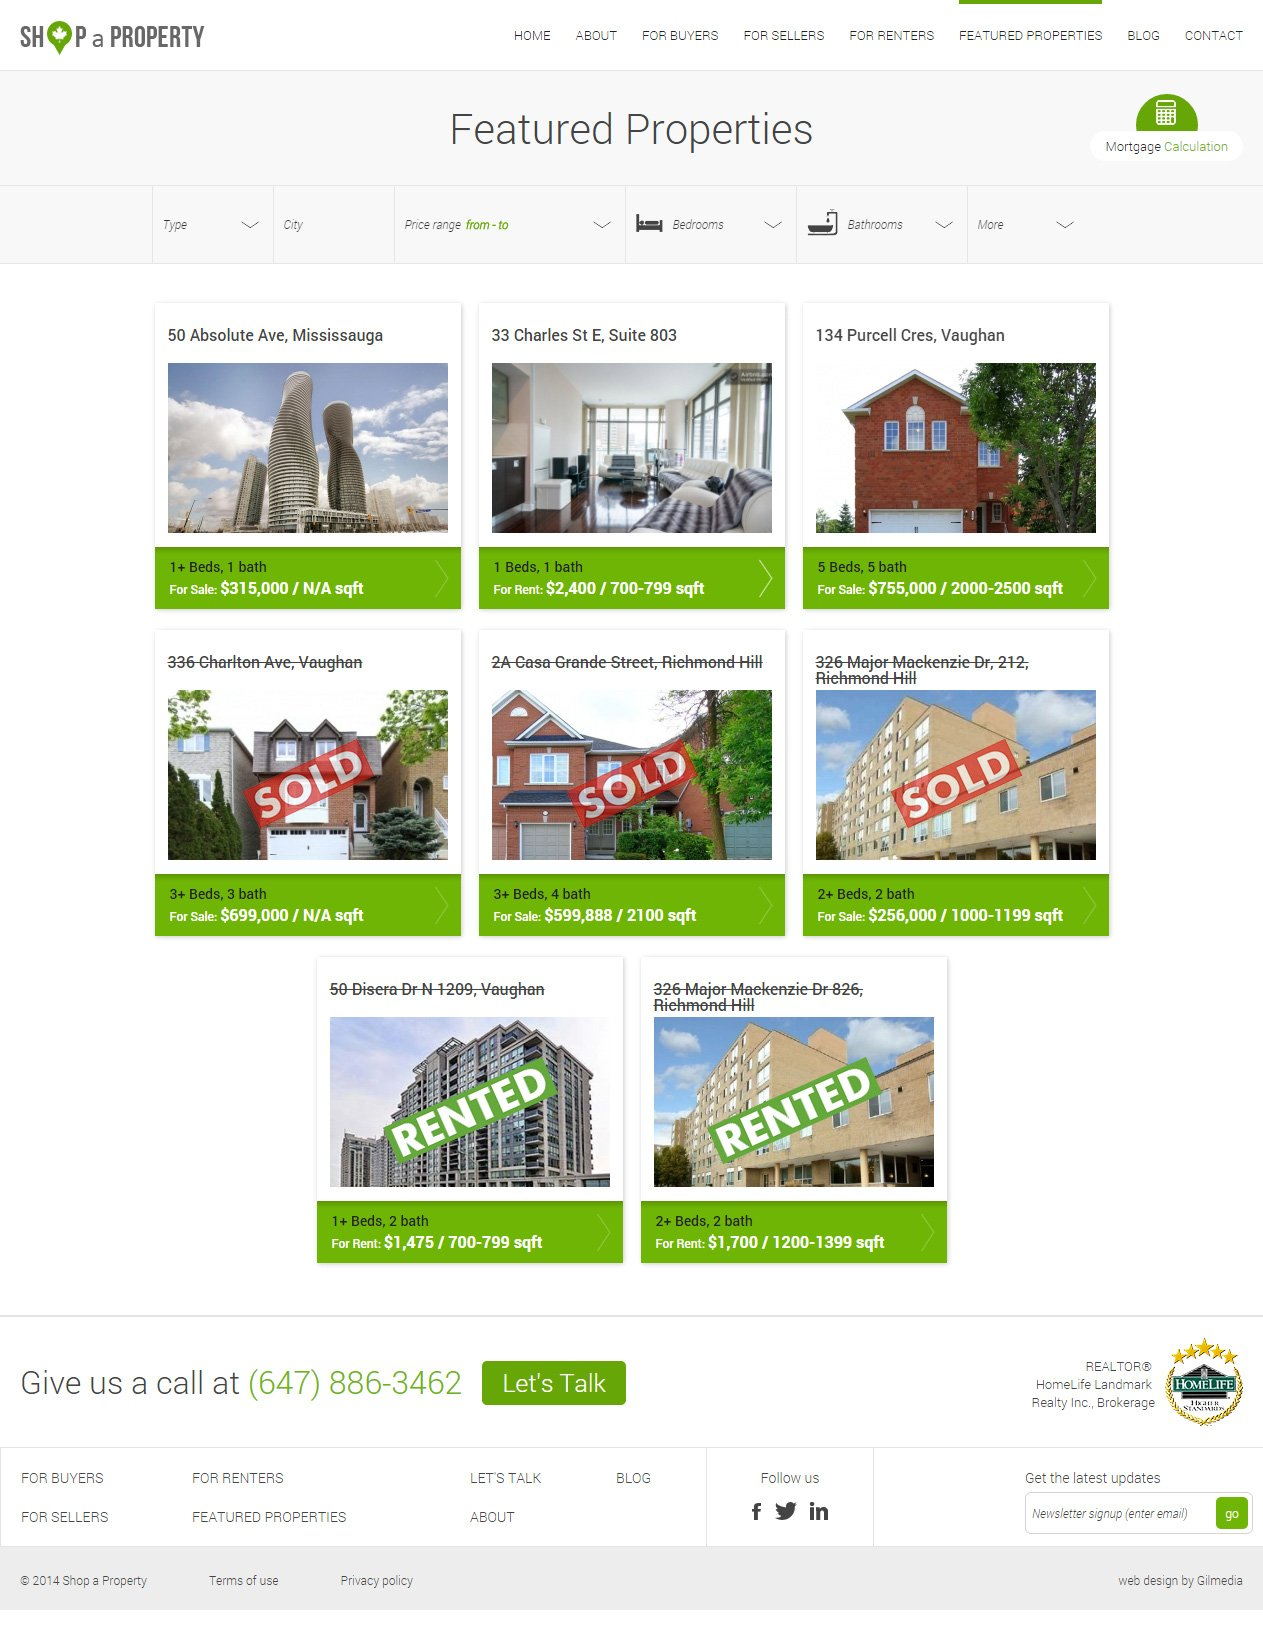 Shop a Property Featured Properties